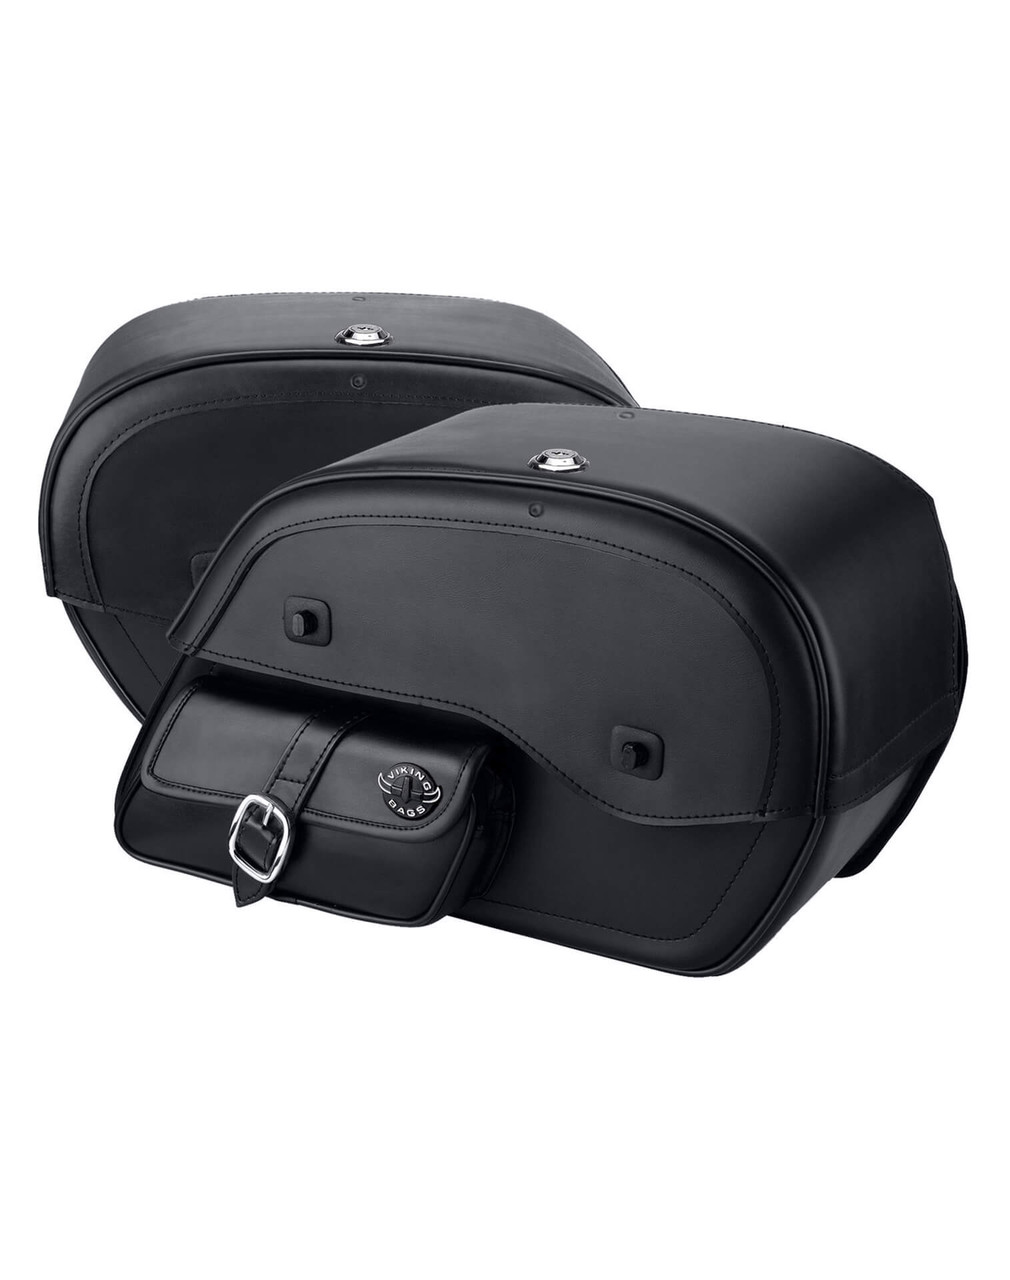 Honda VTX 1300 Retro Charger Side Pocket With Shock Cutout Motorcycle Saddlebags Both Bags view